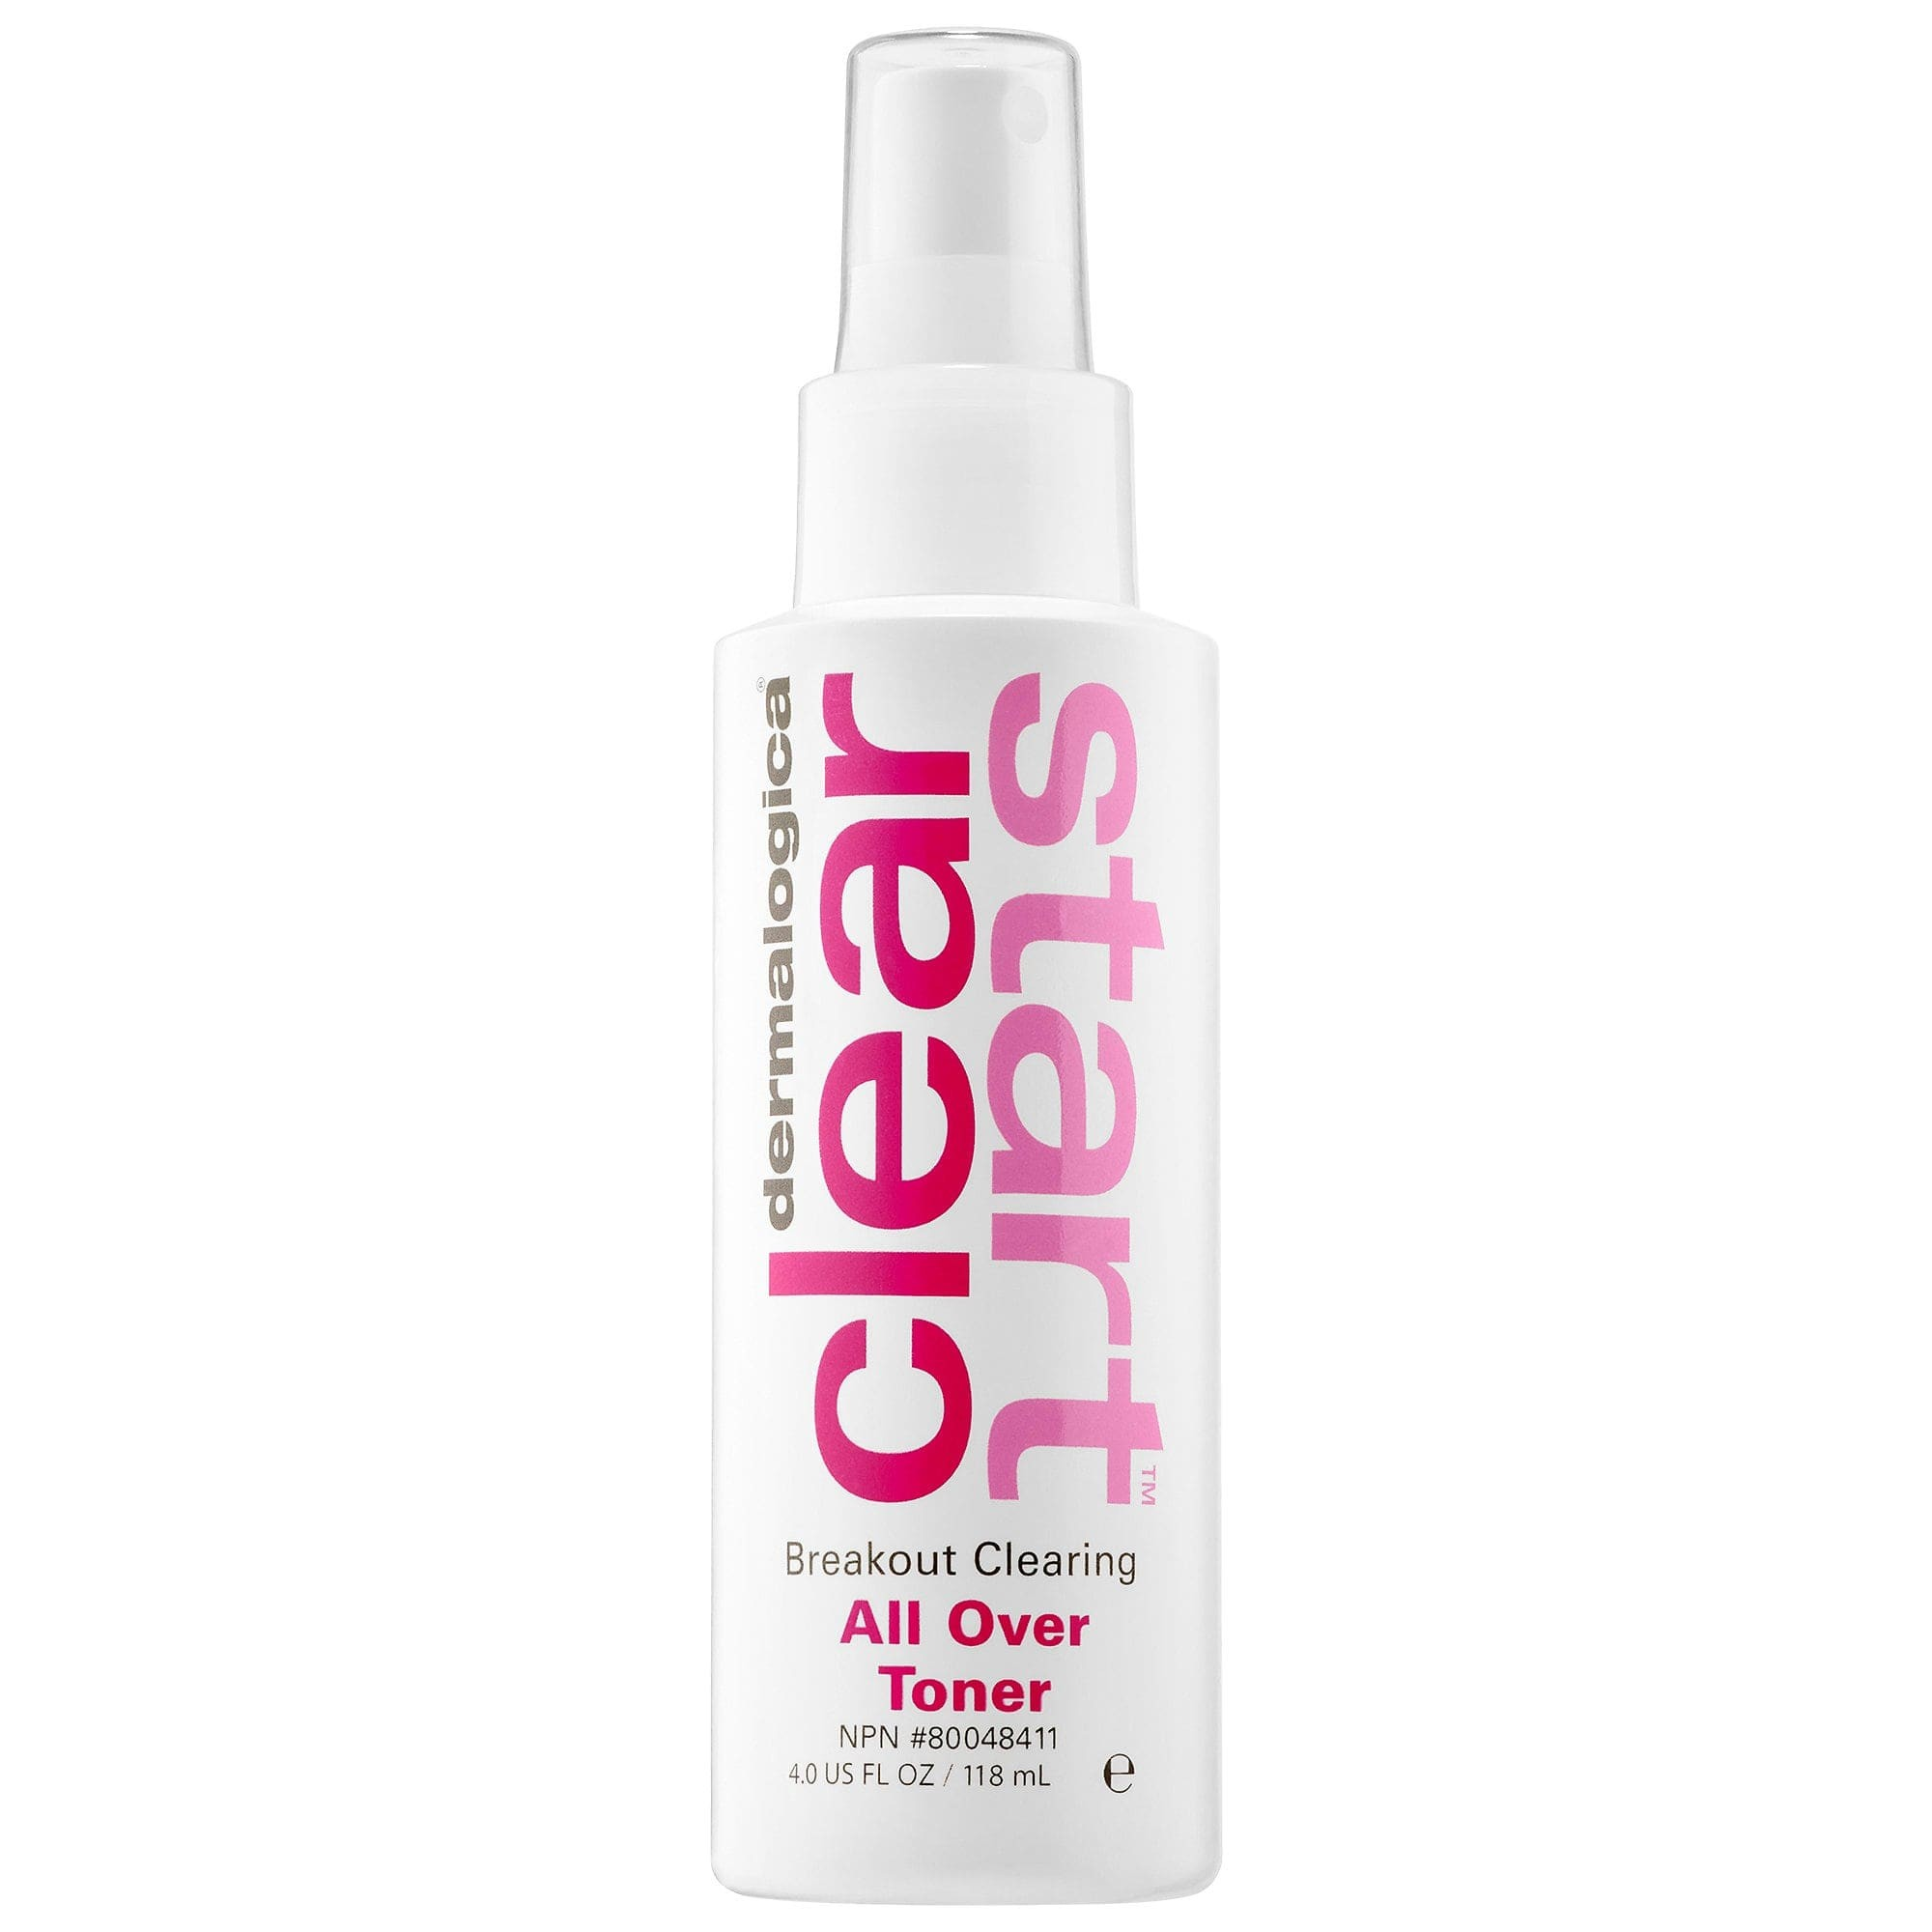 Dermalogica Breakout Clearing All Over Toner